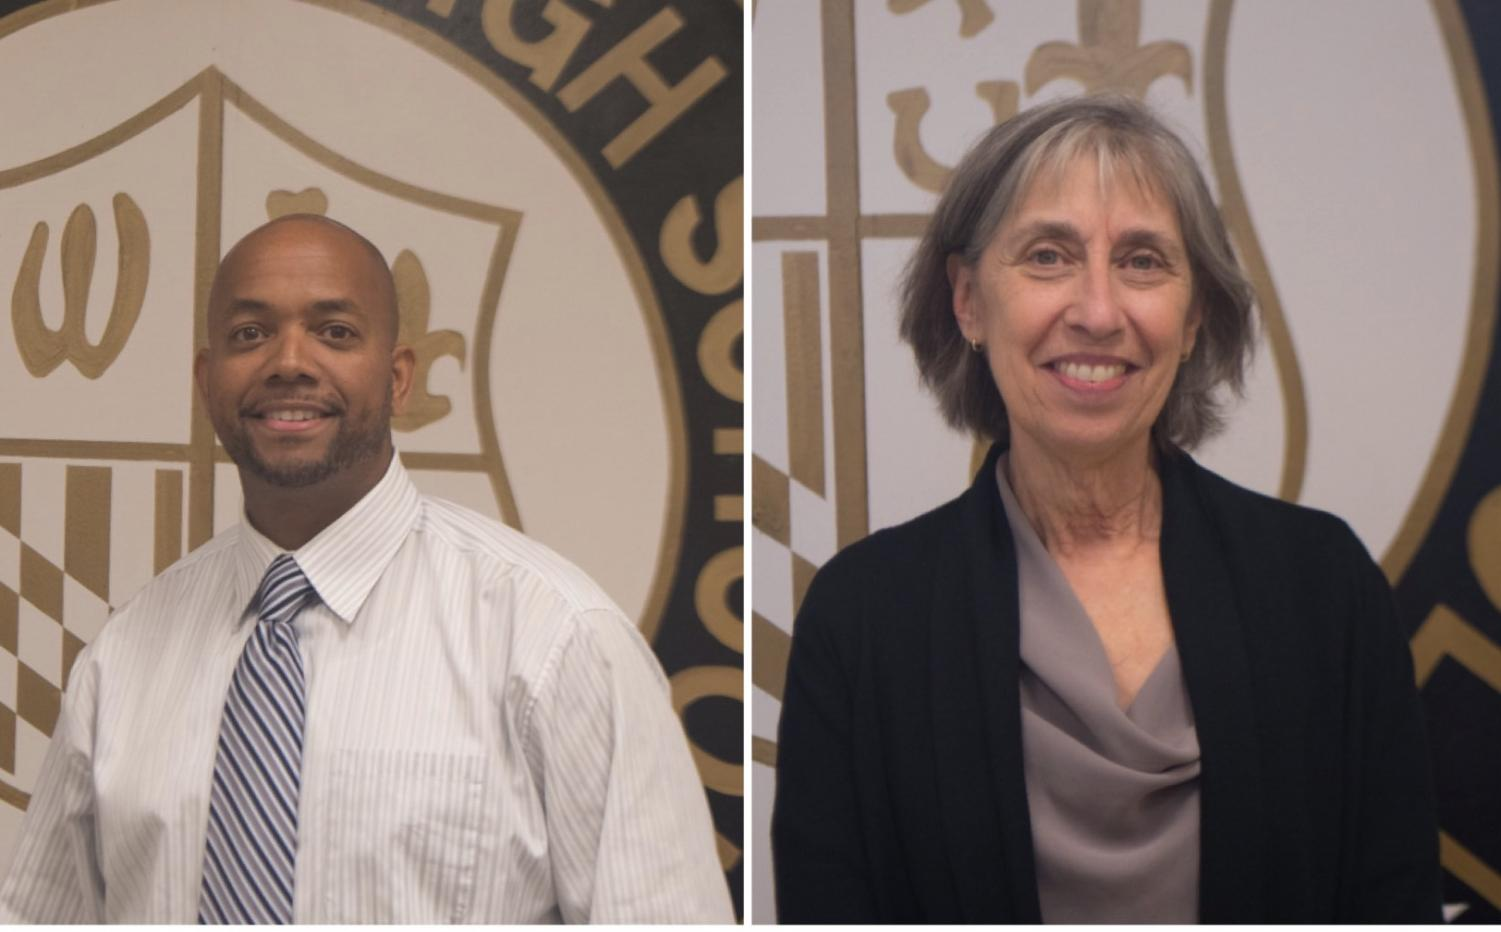 Assistant principal Phillip Yarborough and Michelle Lipson joined Rainer Kulenkampff and Kristen Cody this year. Both Began their education careers 20 years ago. Lipton taught math at Rosa Parks High School and Yarborough taught English at a North Carolina high school. Photos by Katherine Luo.